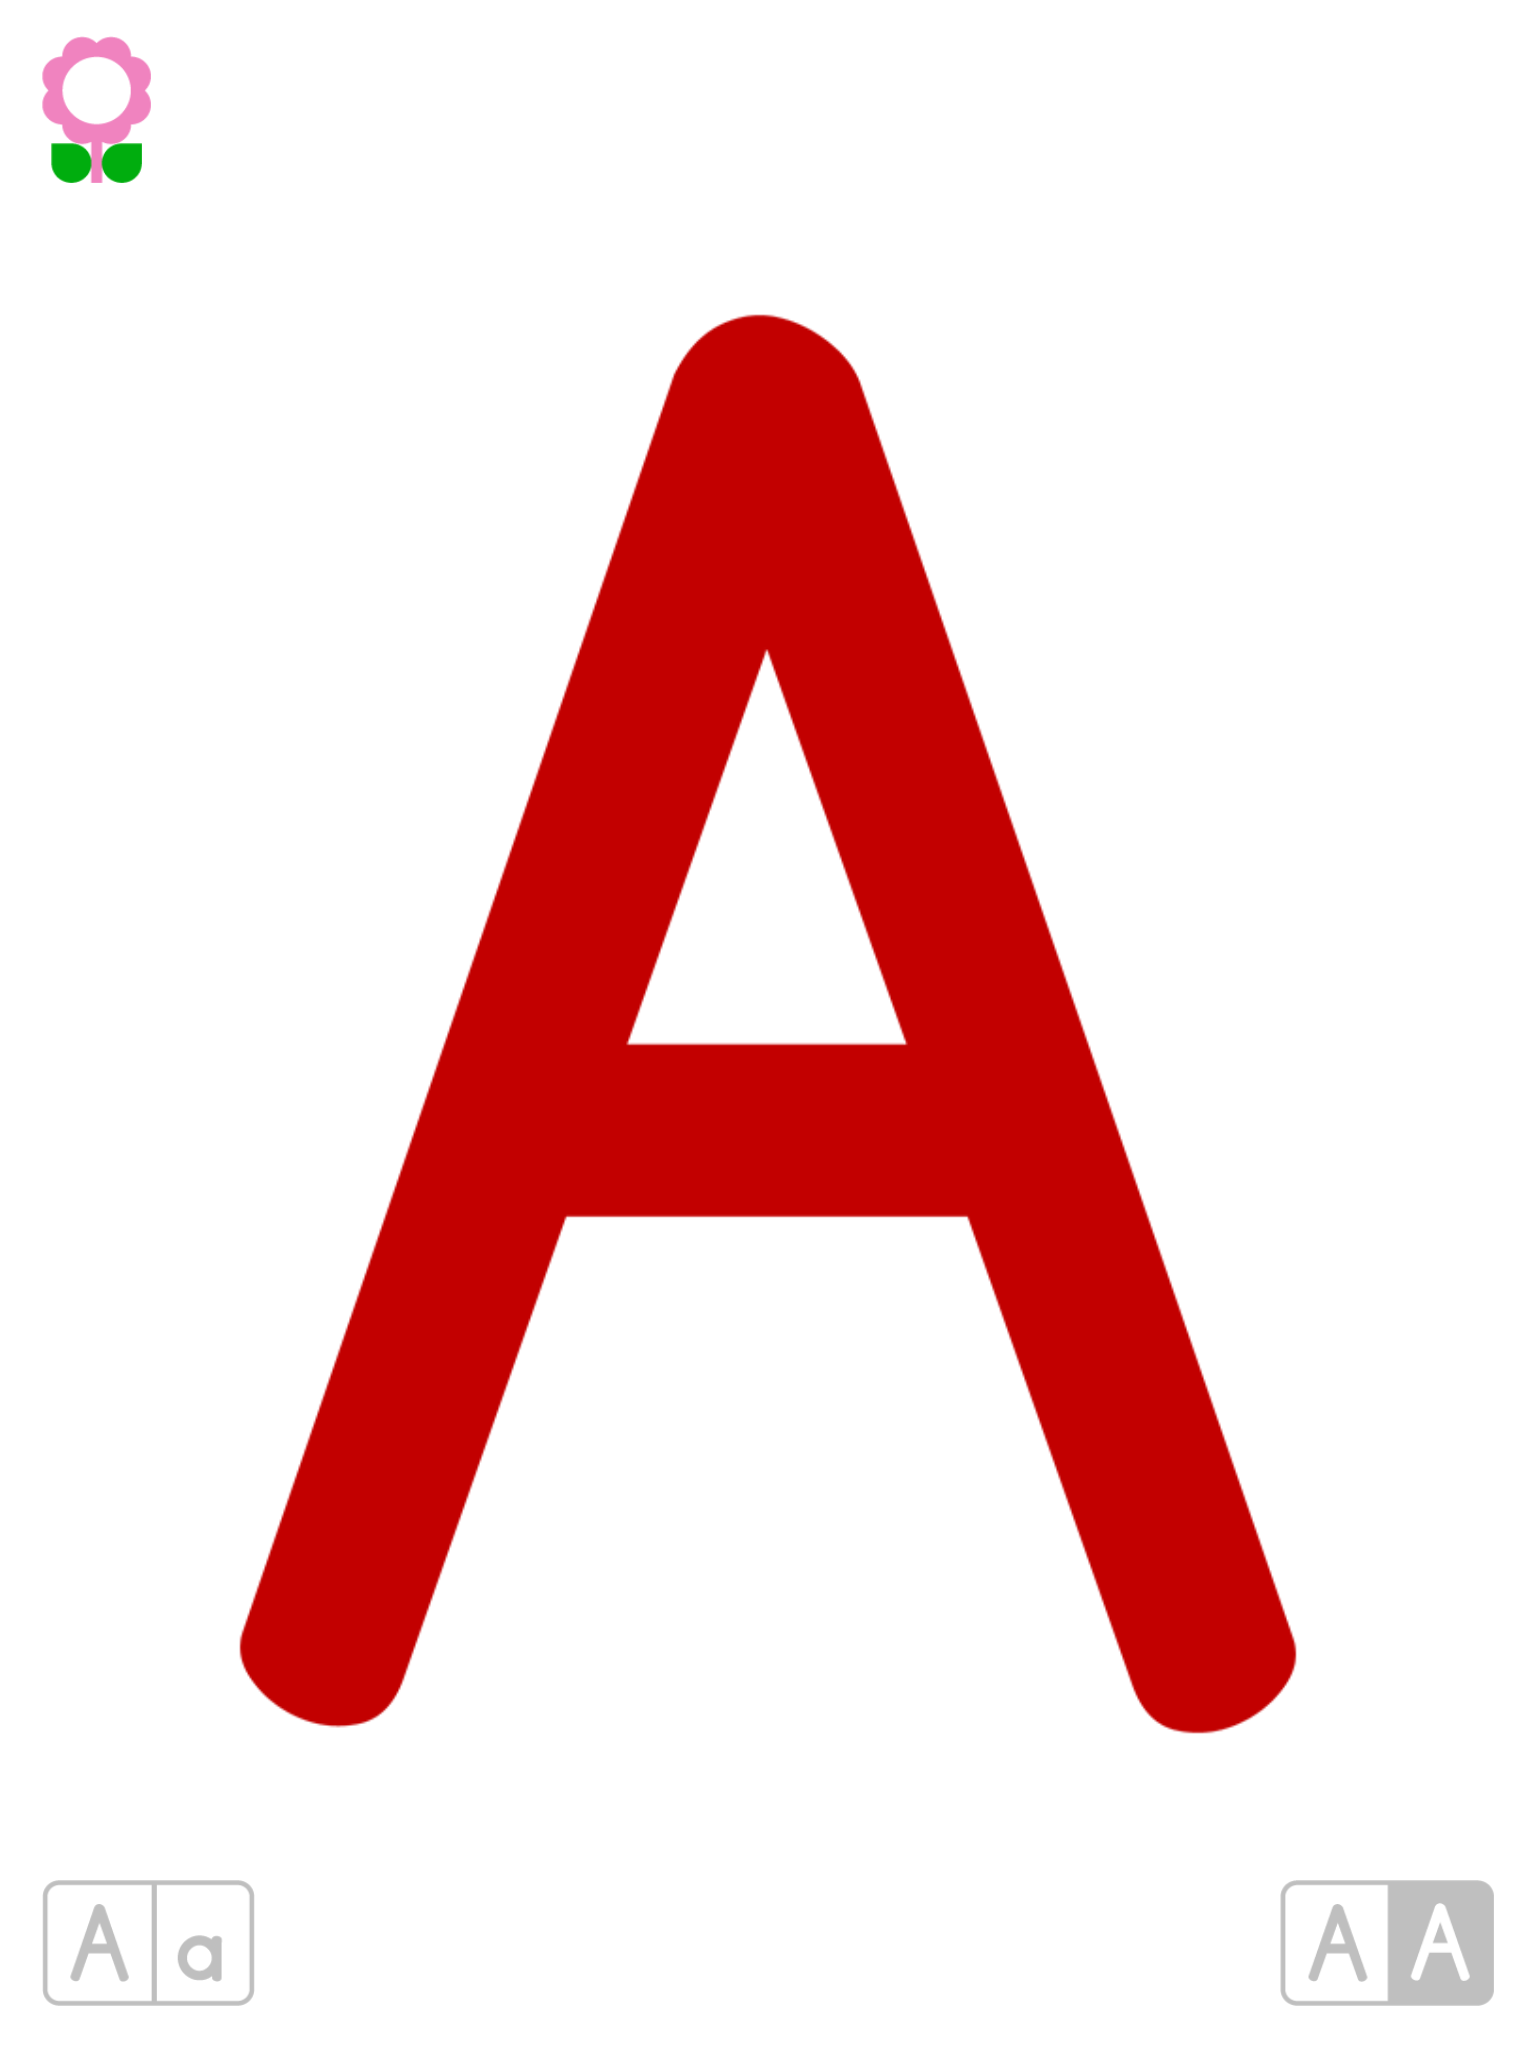 Colorful Abc Colorful Alphabets Flash Cards App With